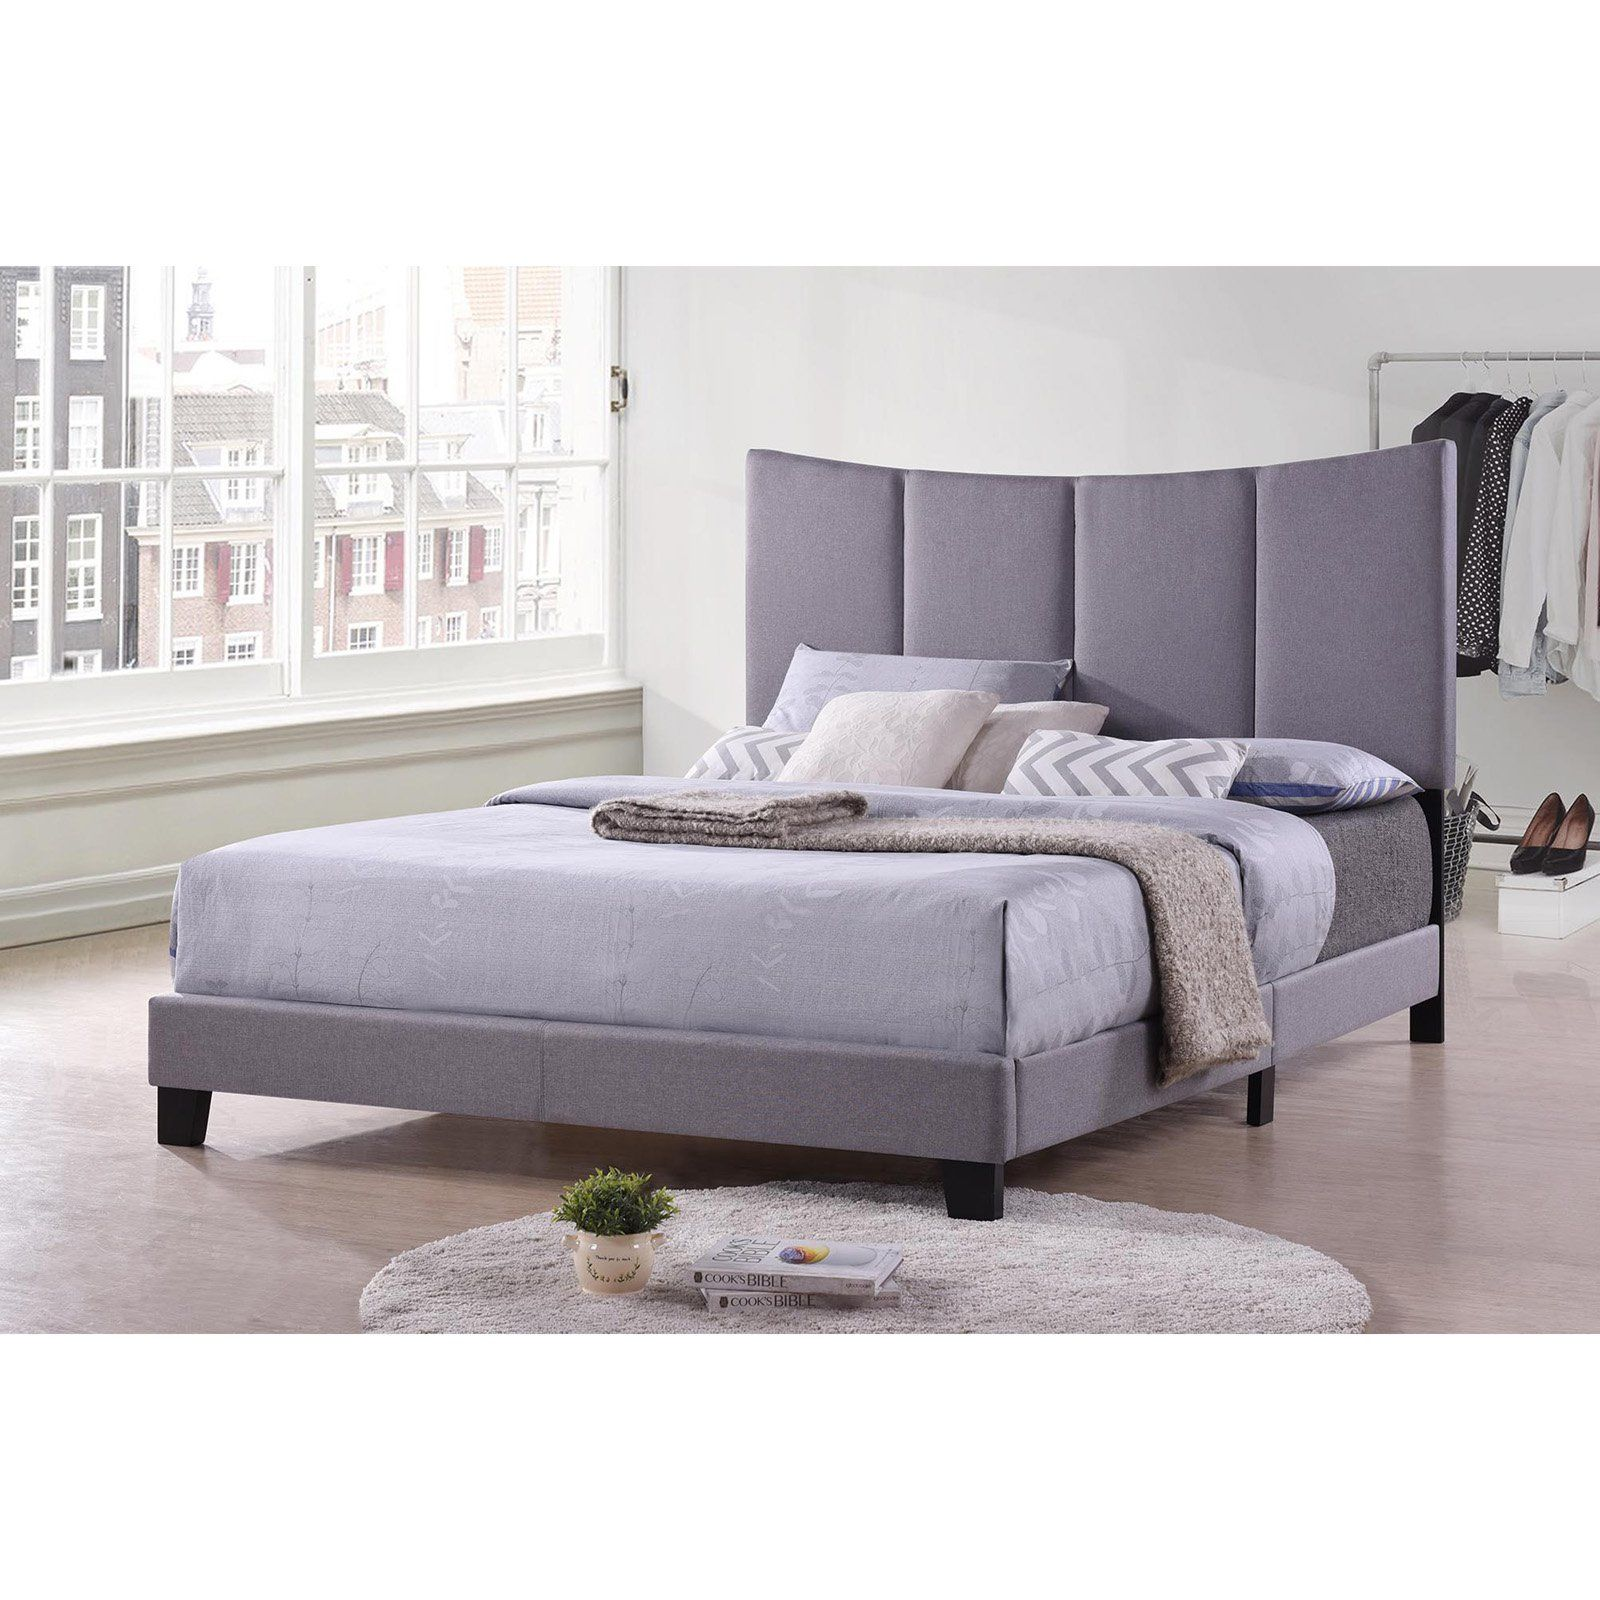 K B Furniture B8026f Polyester Upholstered Low Profile Bed Size